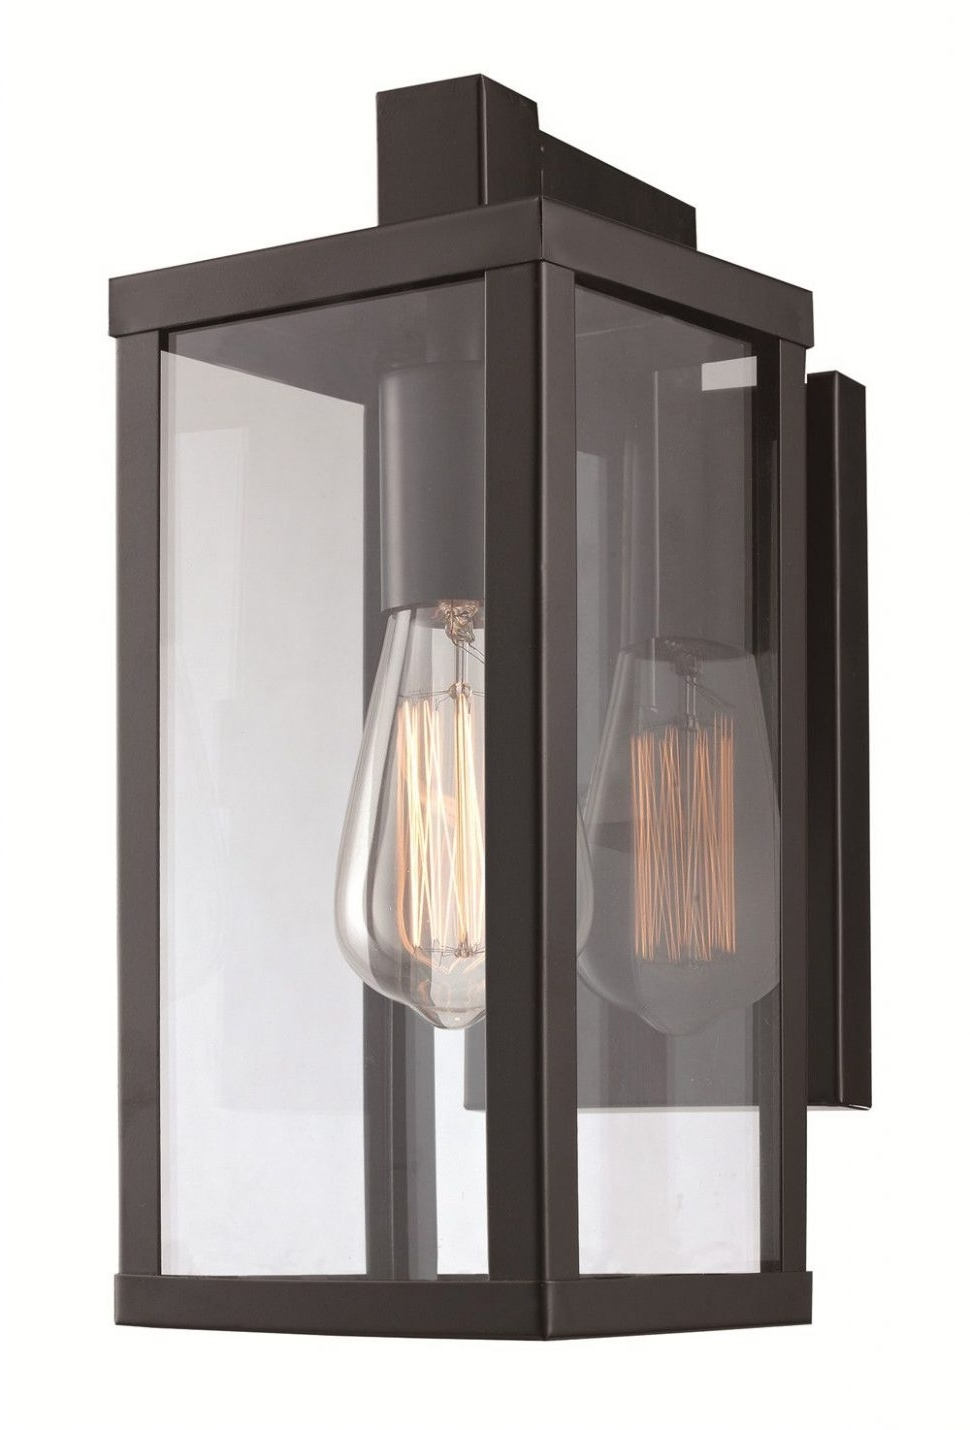 Contemporary Garden Lights Fixture At Home Depot For Fashionable Light : Exterior Lighting Ceiling Light Fixture Outdoor Led Carriage (View 19 of 20)